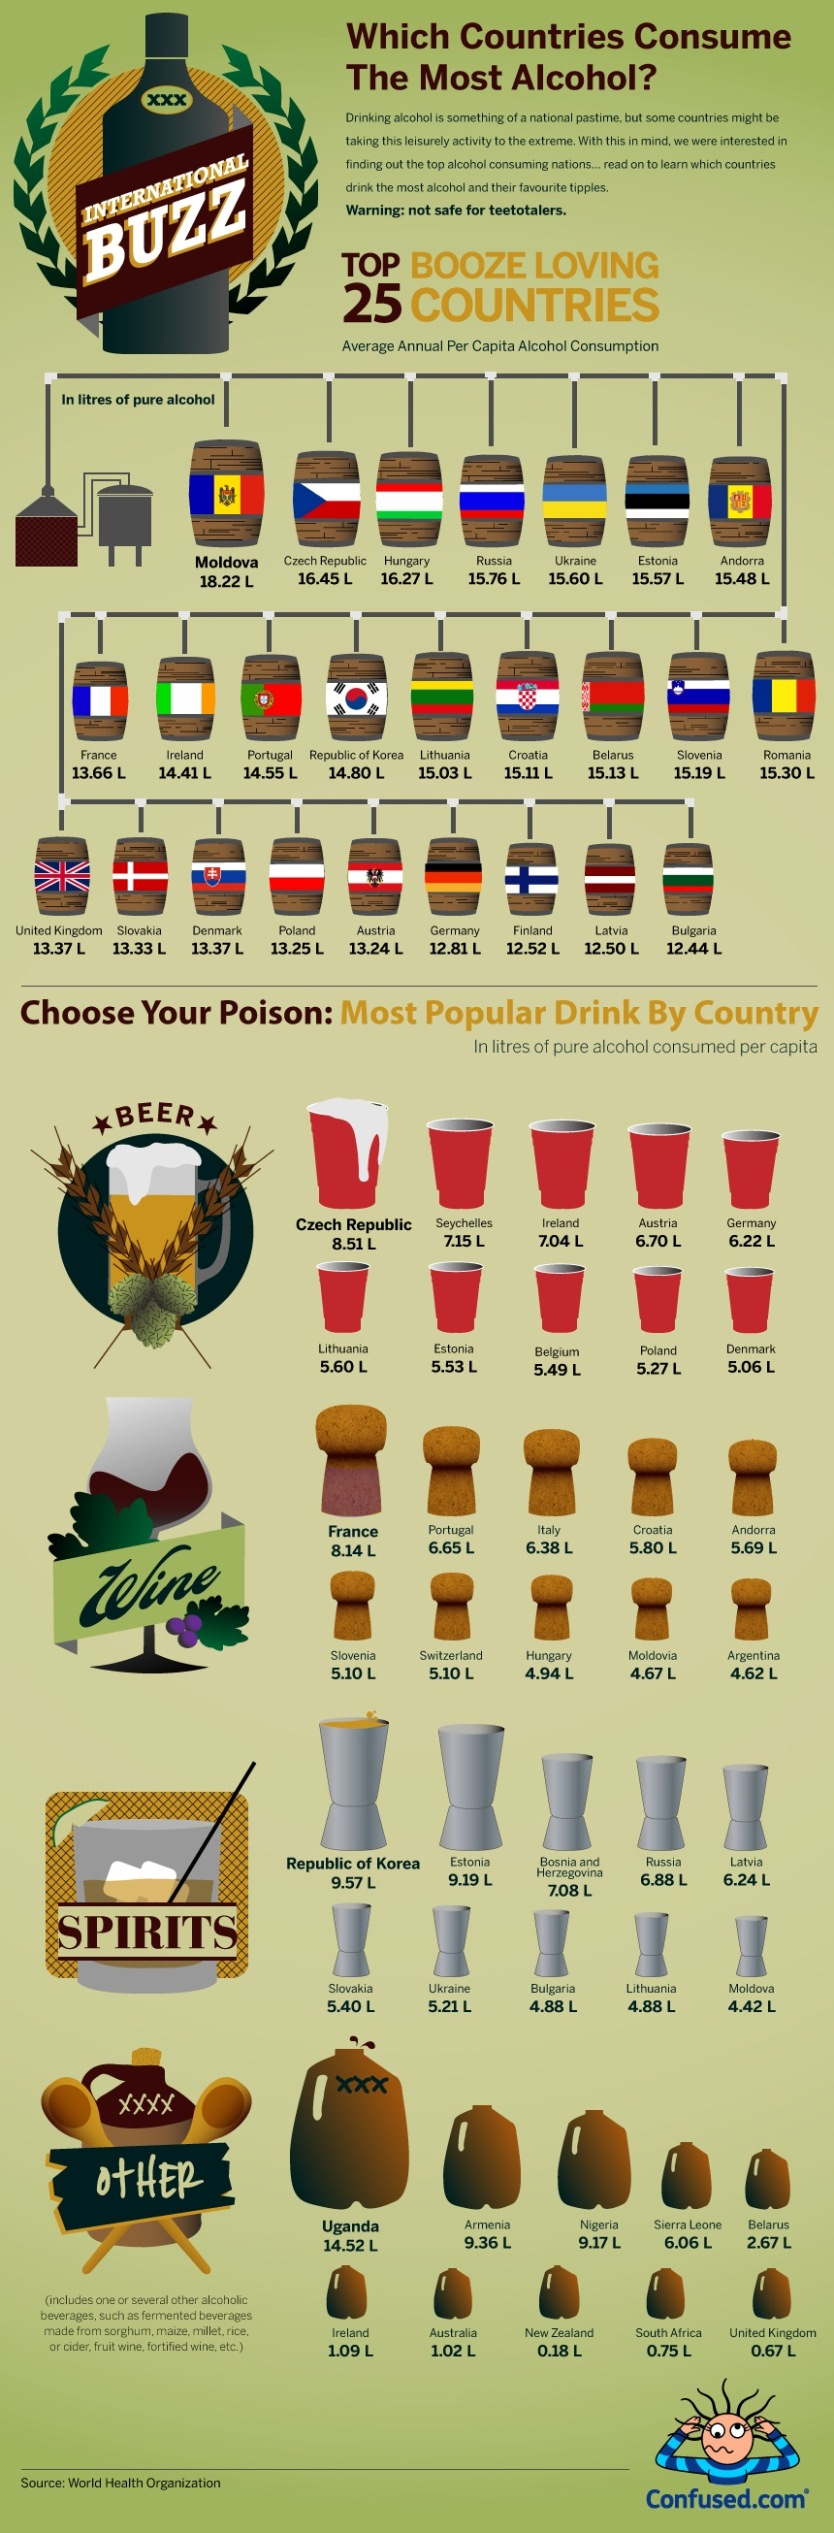 which-country-consumes-the-most-alcohol